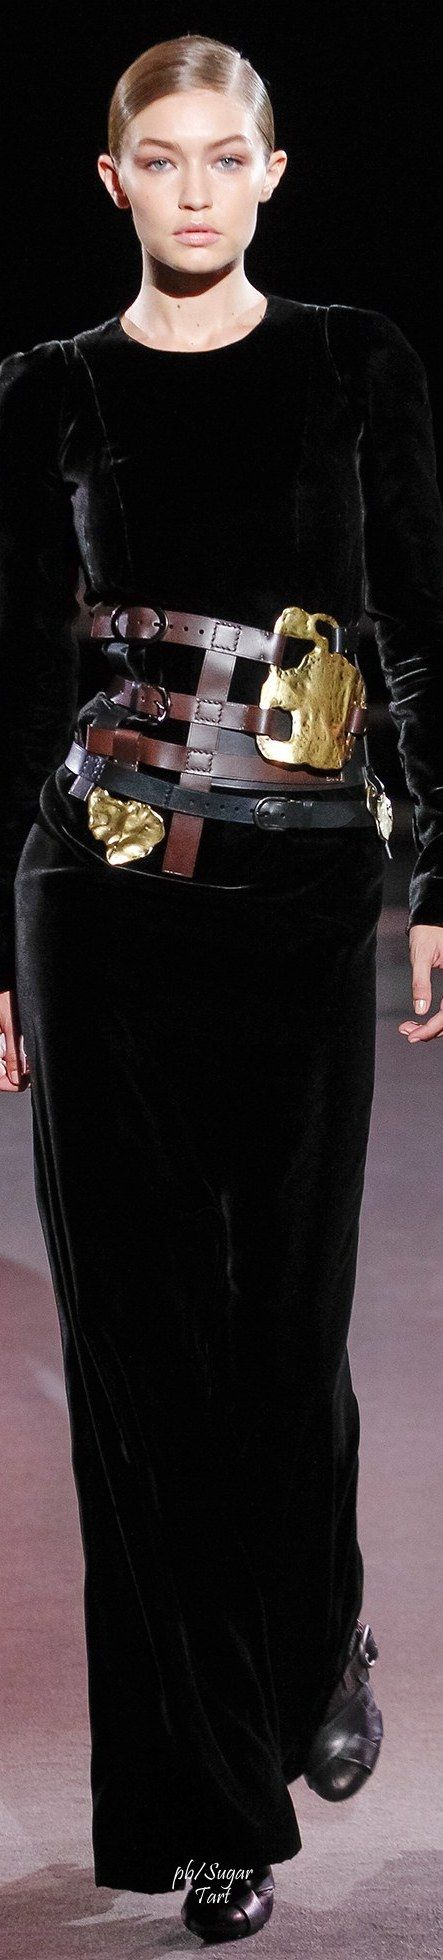 Tom Ford - Fall 2016 RTW